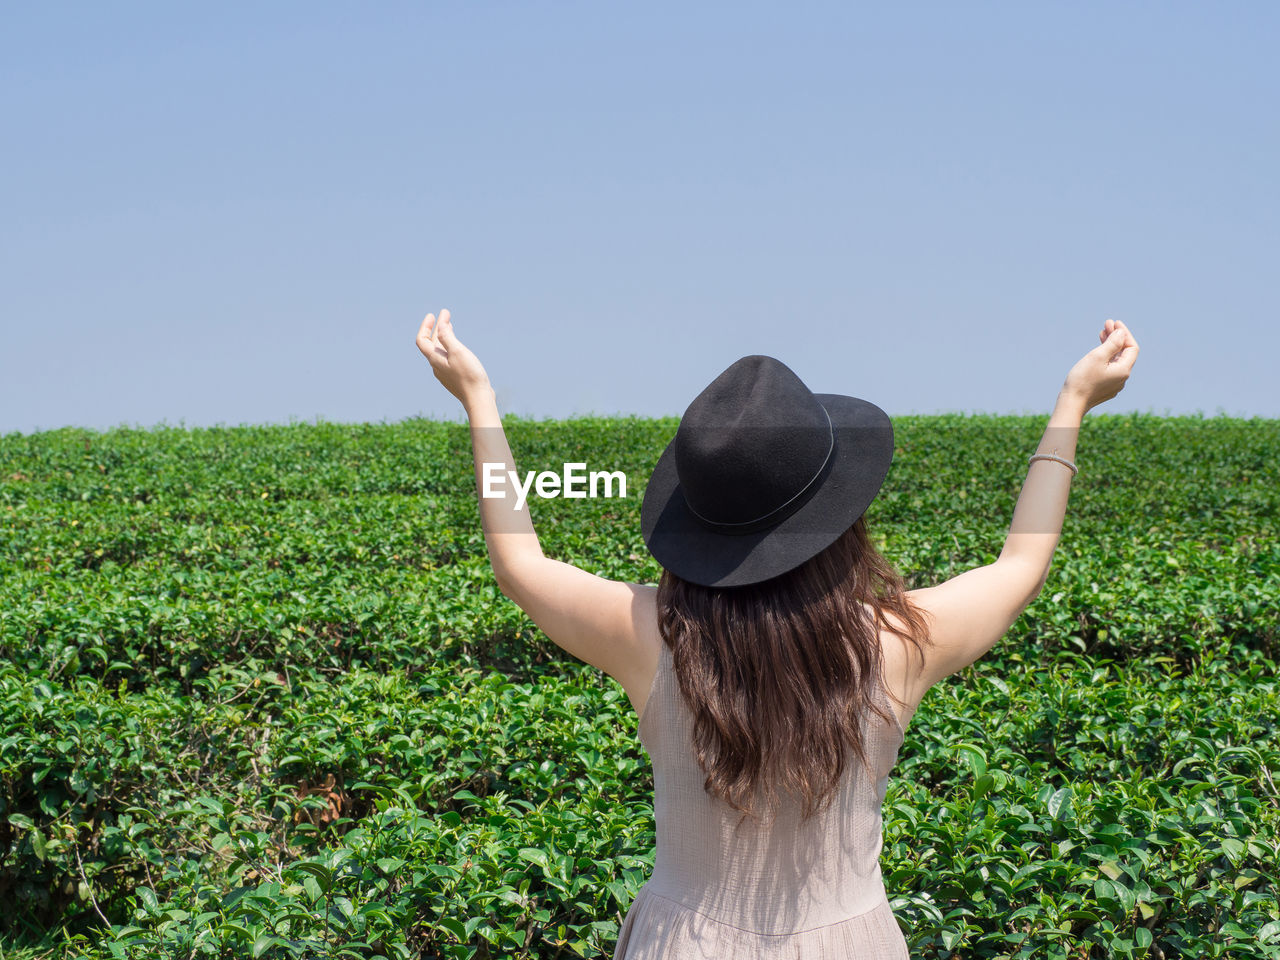 Rear view of woman wearing hat standing amidst plants against clear sky